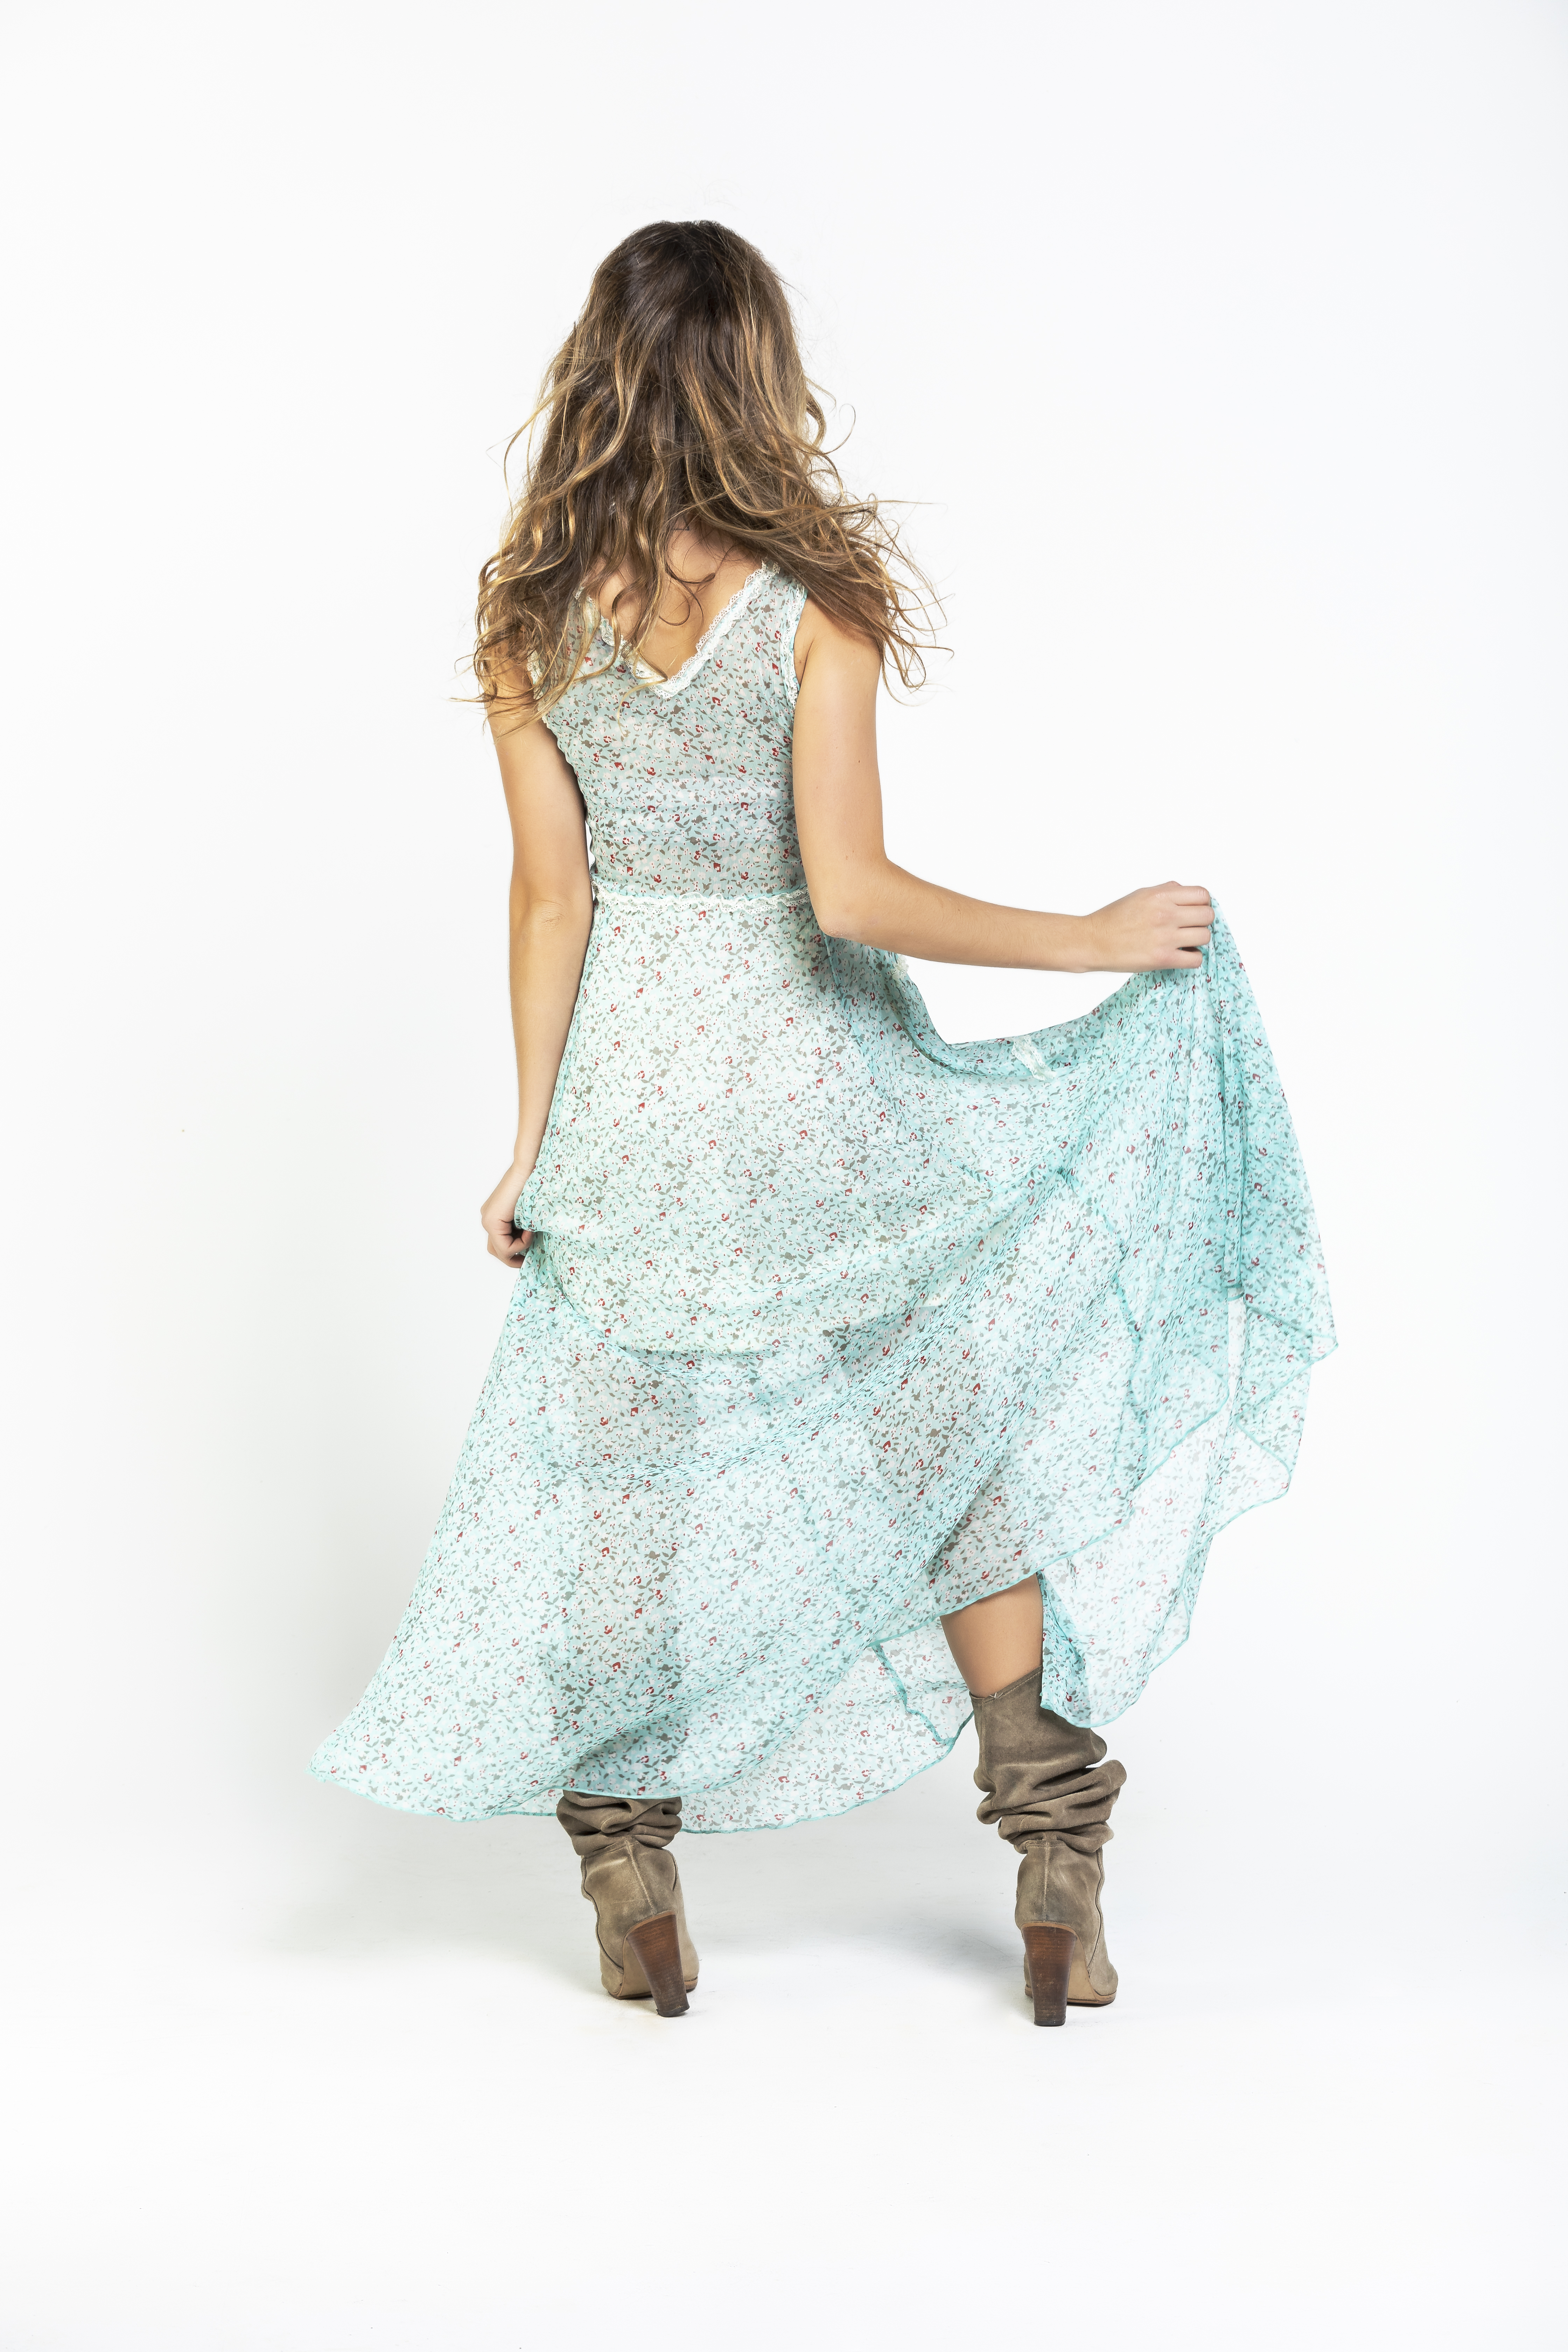 Savage Culture: Baby Roses Boho Chic Riverside Maxi Dress